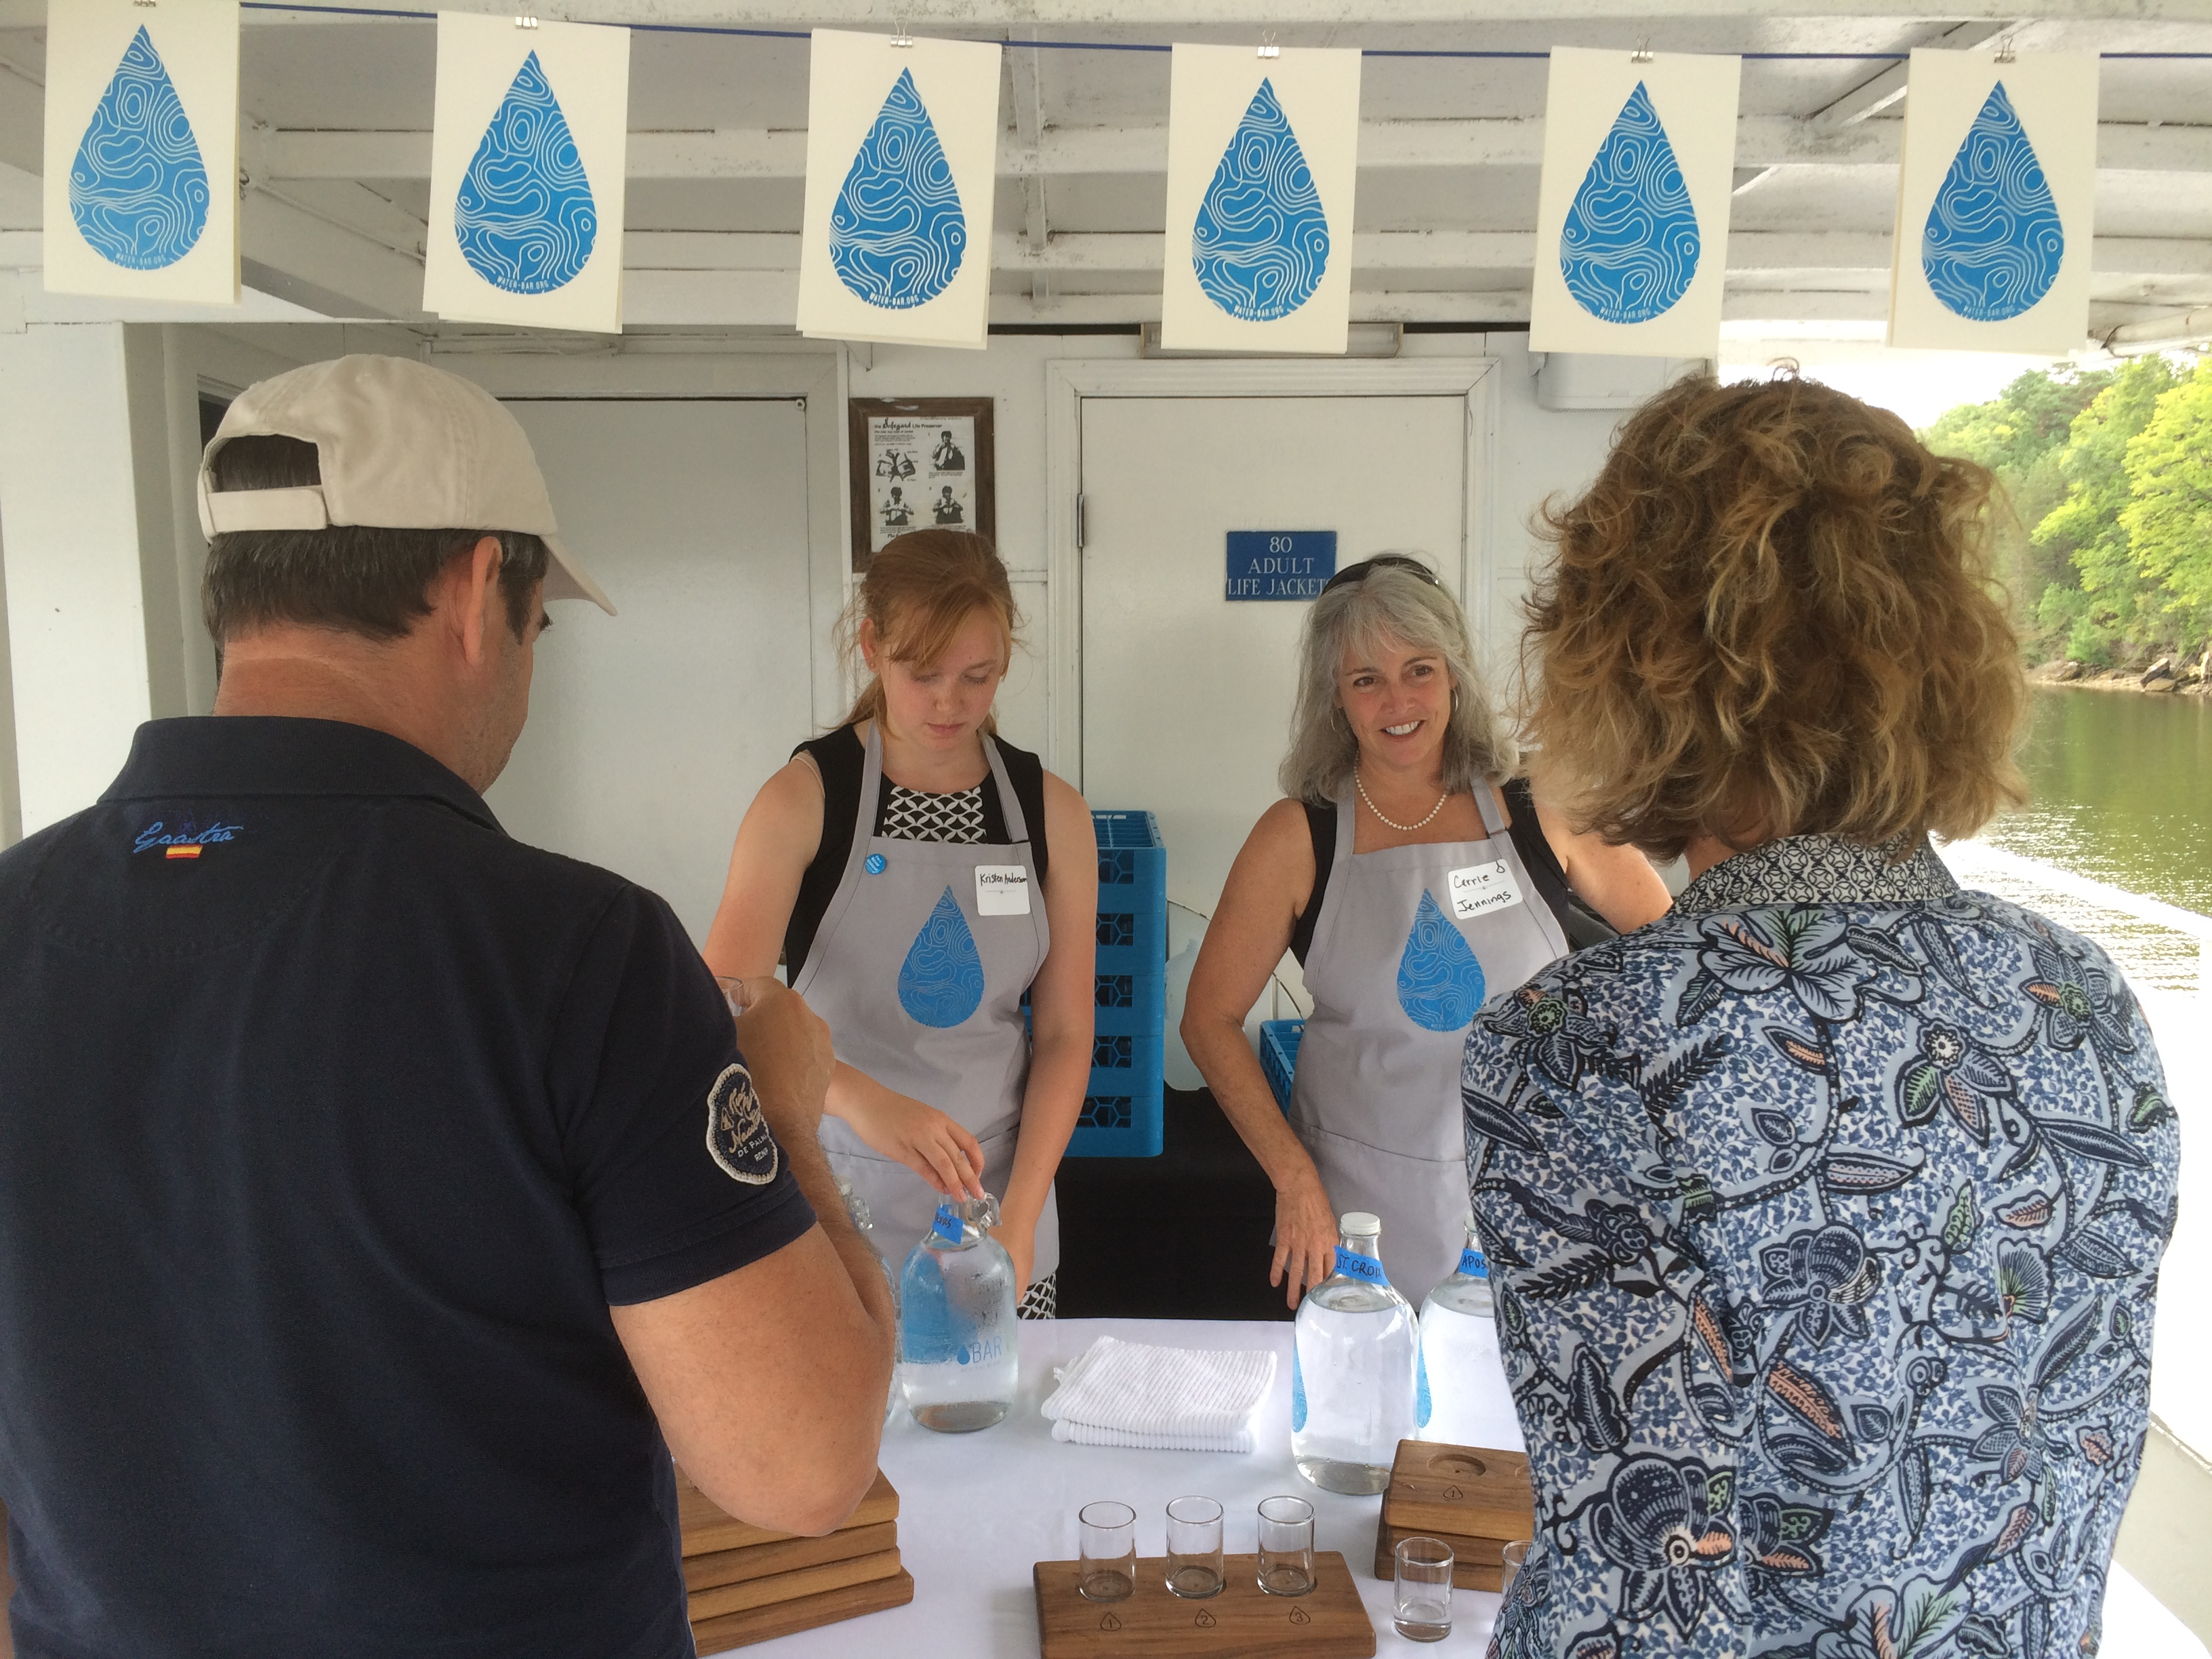 Serving water at Water Bar on the St. Croix River.